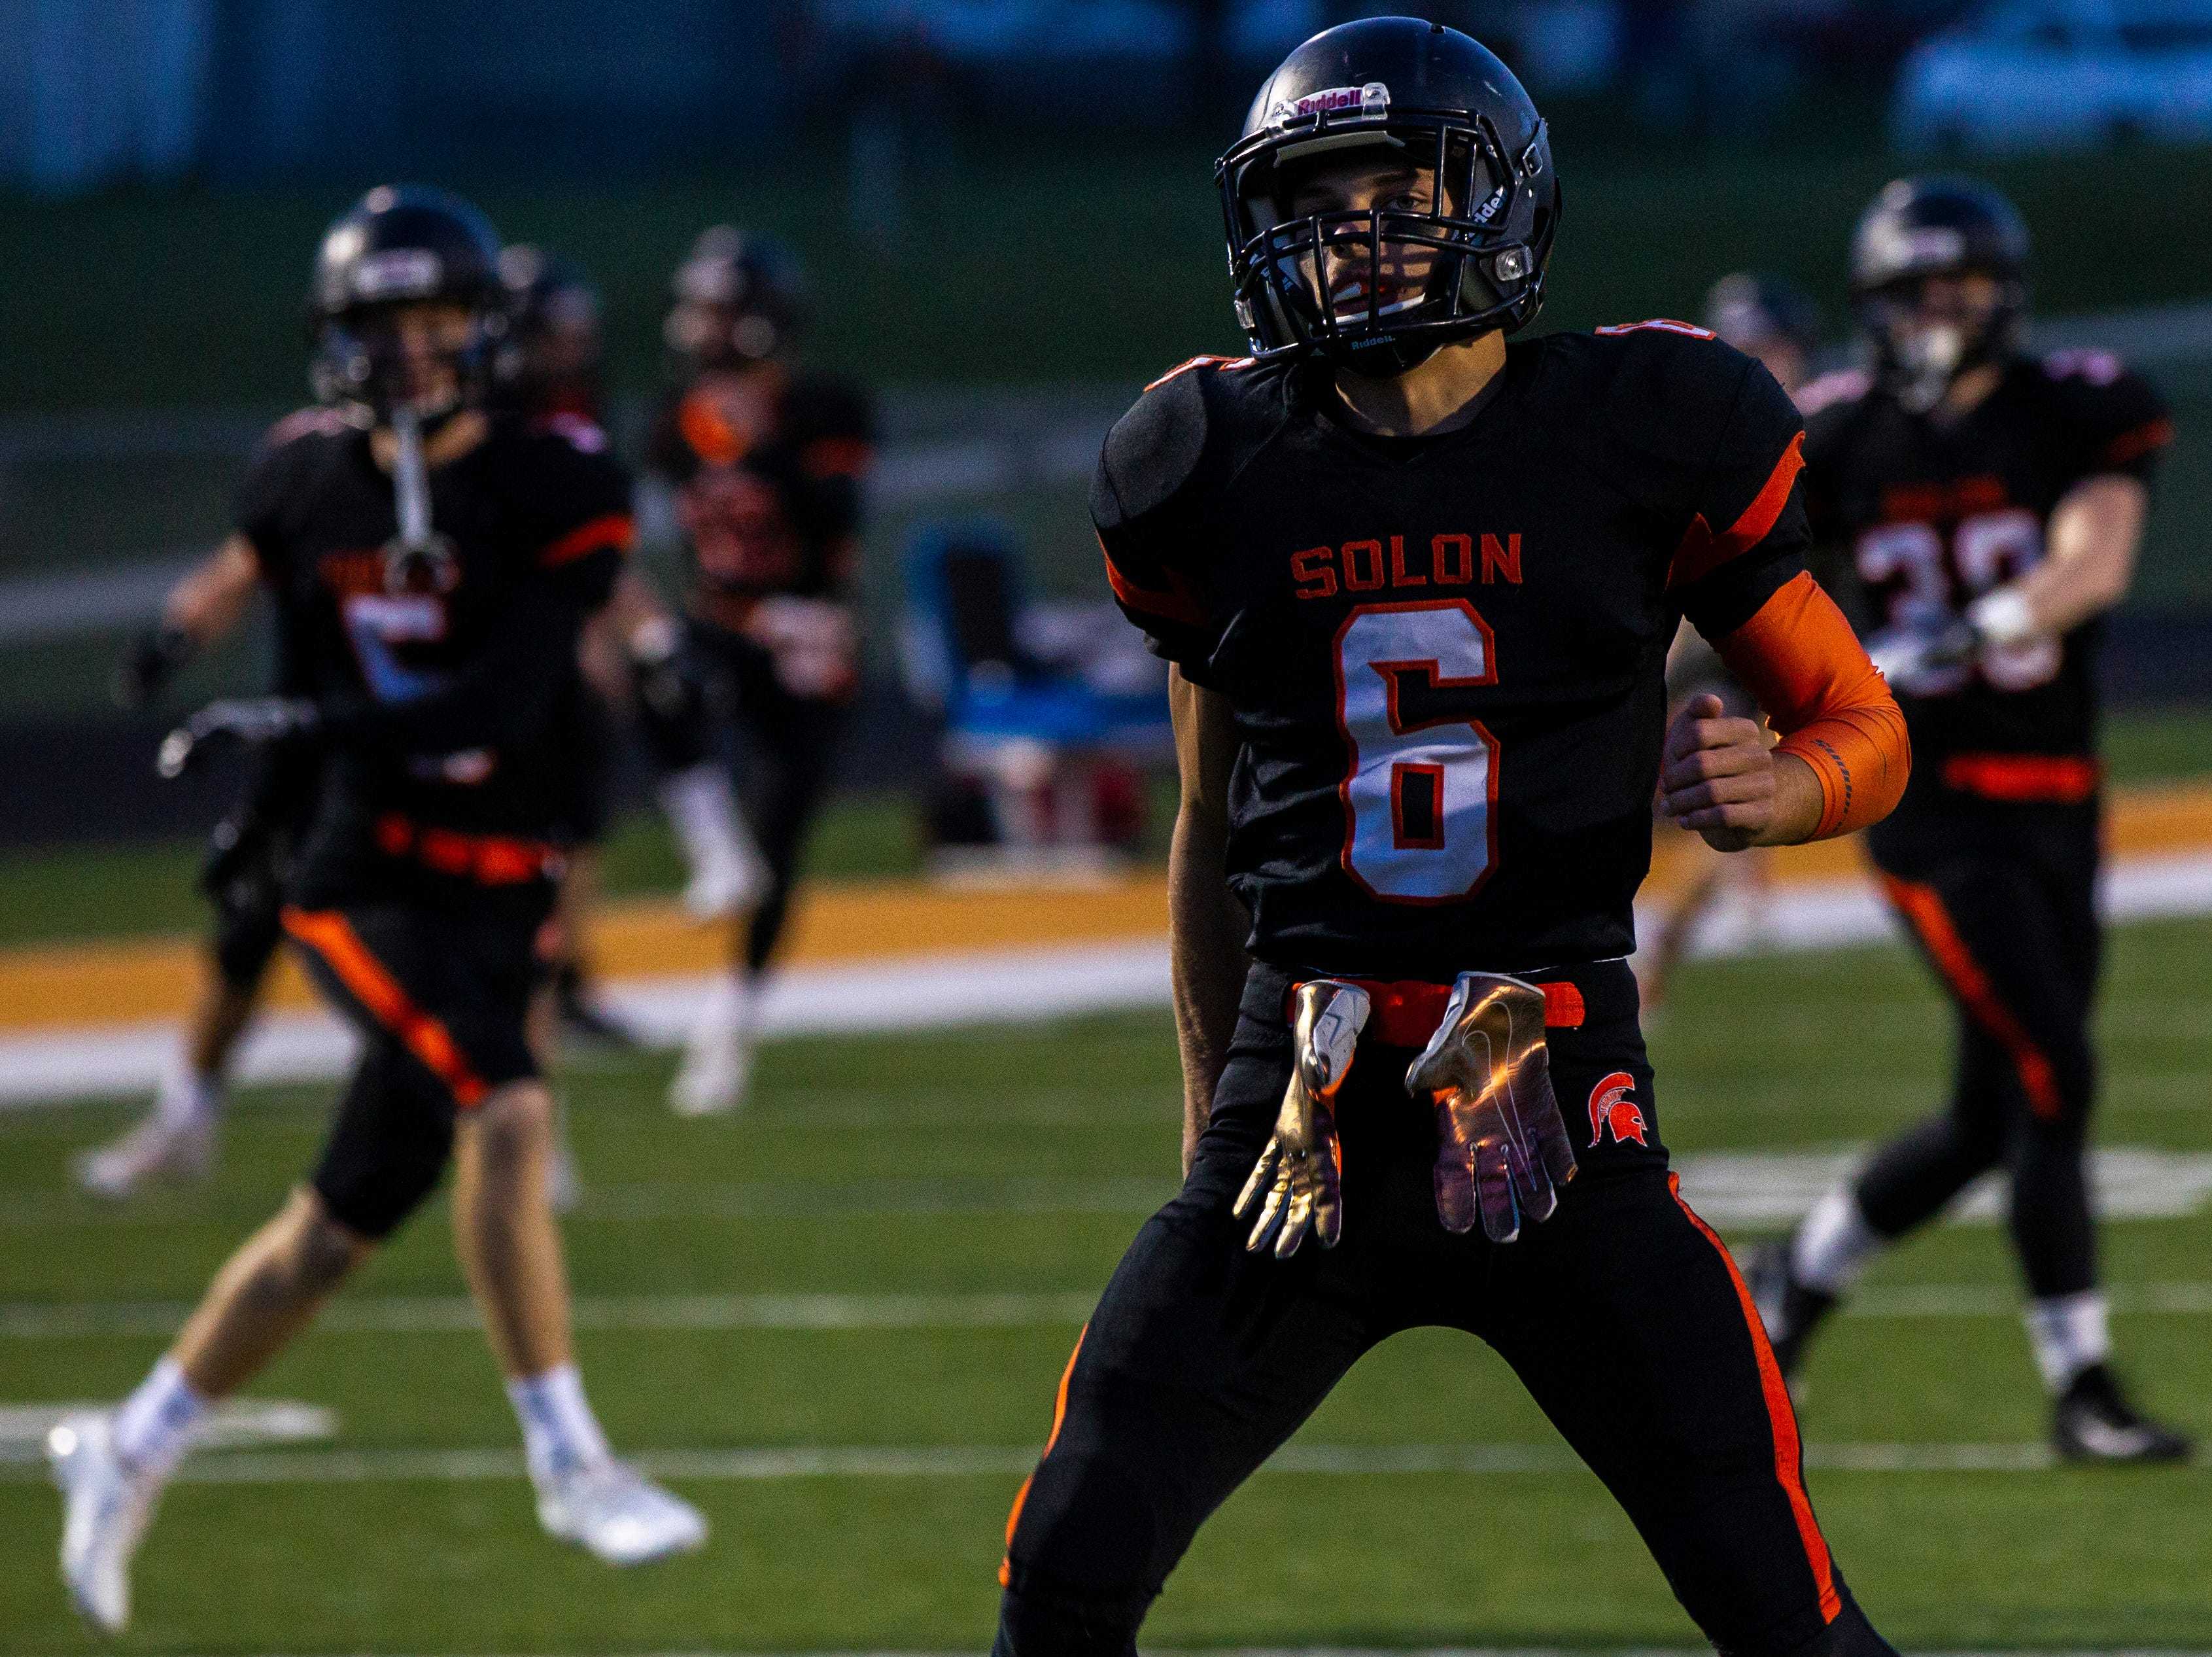 Solon's Dillon Holt (6) warms up before a Class 3A varsity first round playoff football game on Friday, Oct. 26, 2018, at Spartan Stadium in Solon, Iowa.